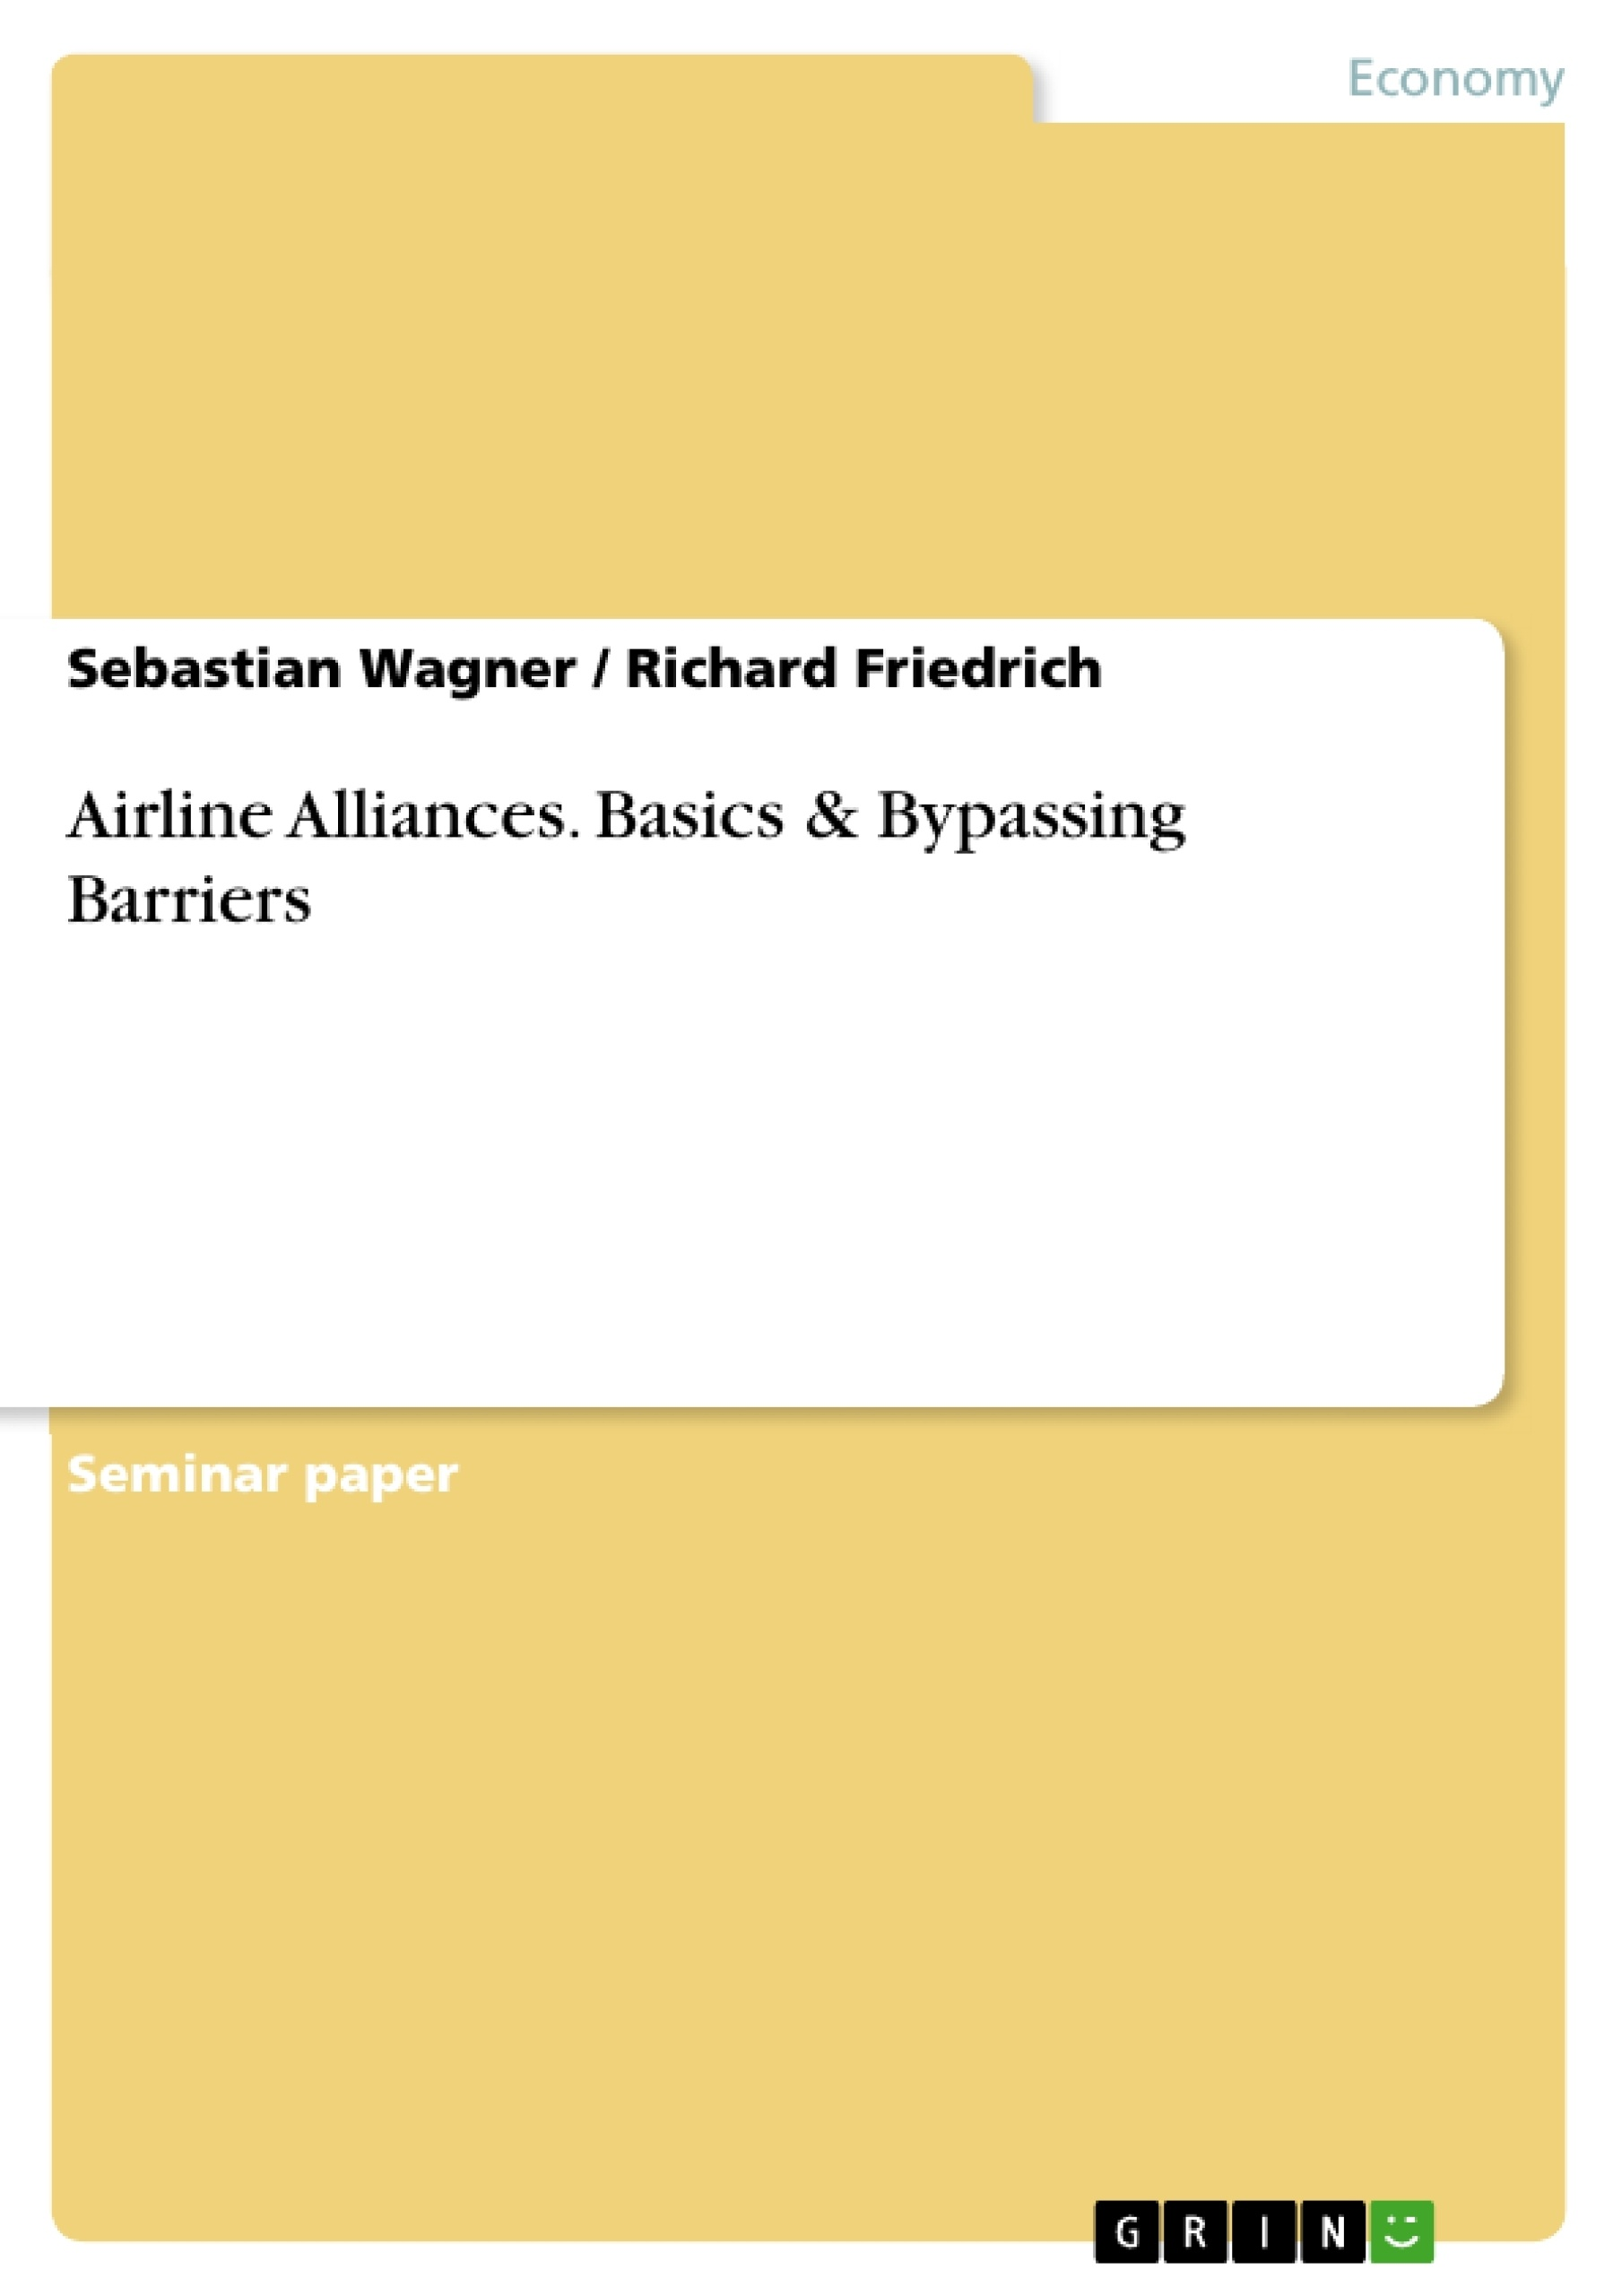 Title: Airline Alliances. Basics & Bypassing Barriers